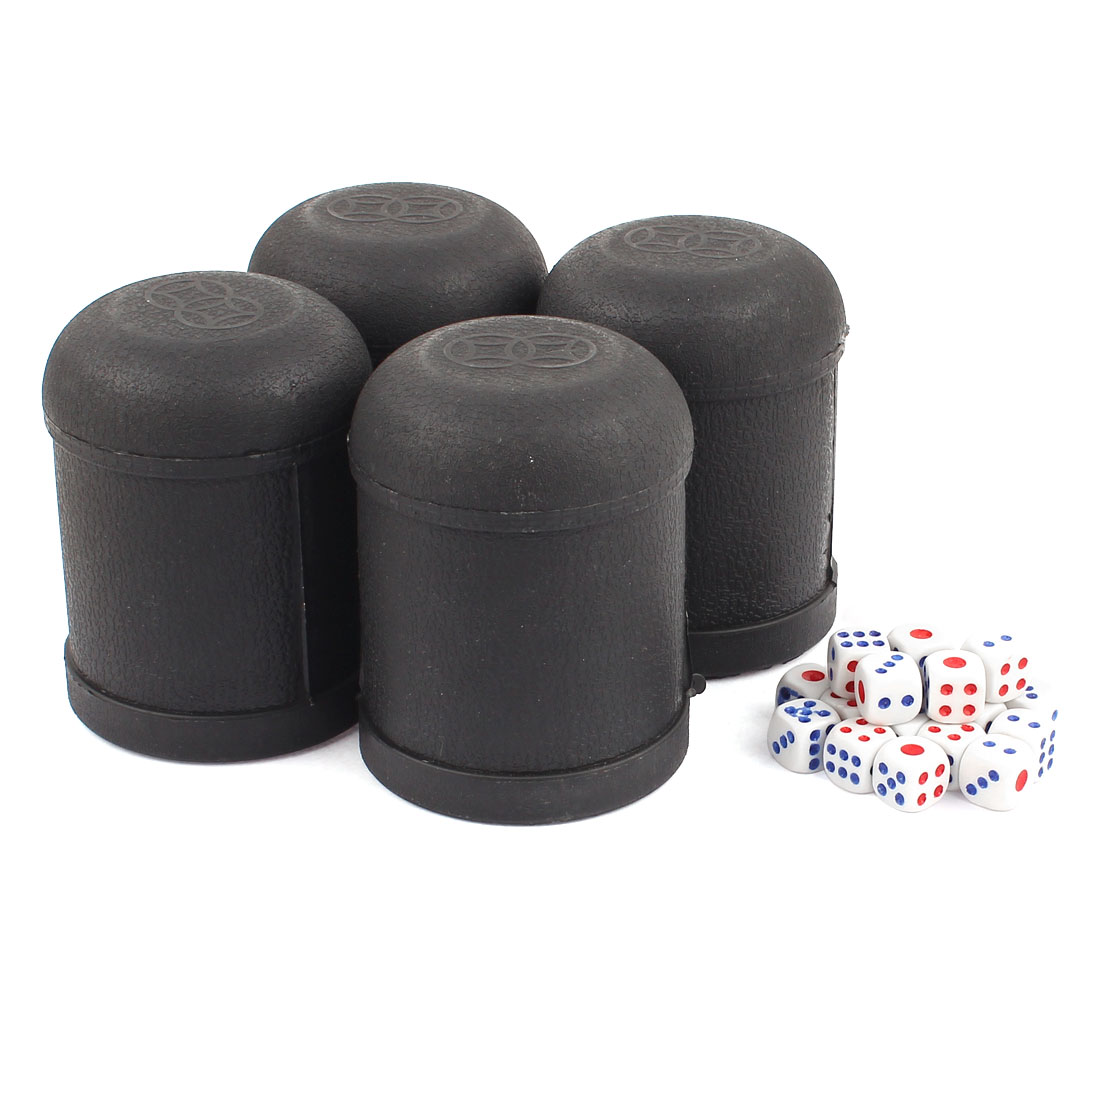 Game Dice Roller Cup Black 4 Pcs each w 5 Dices